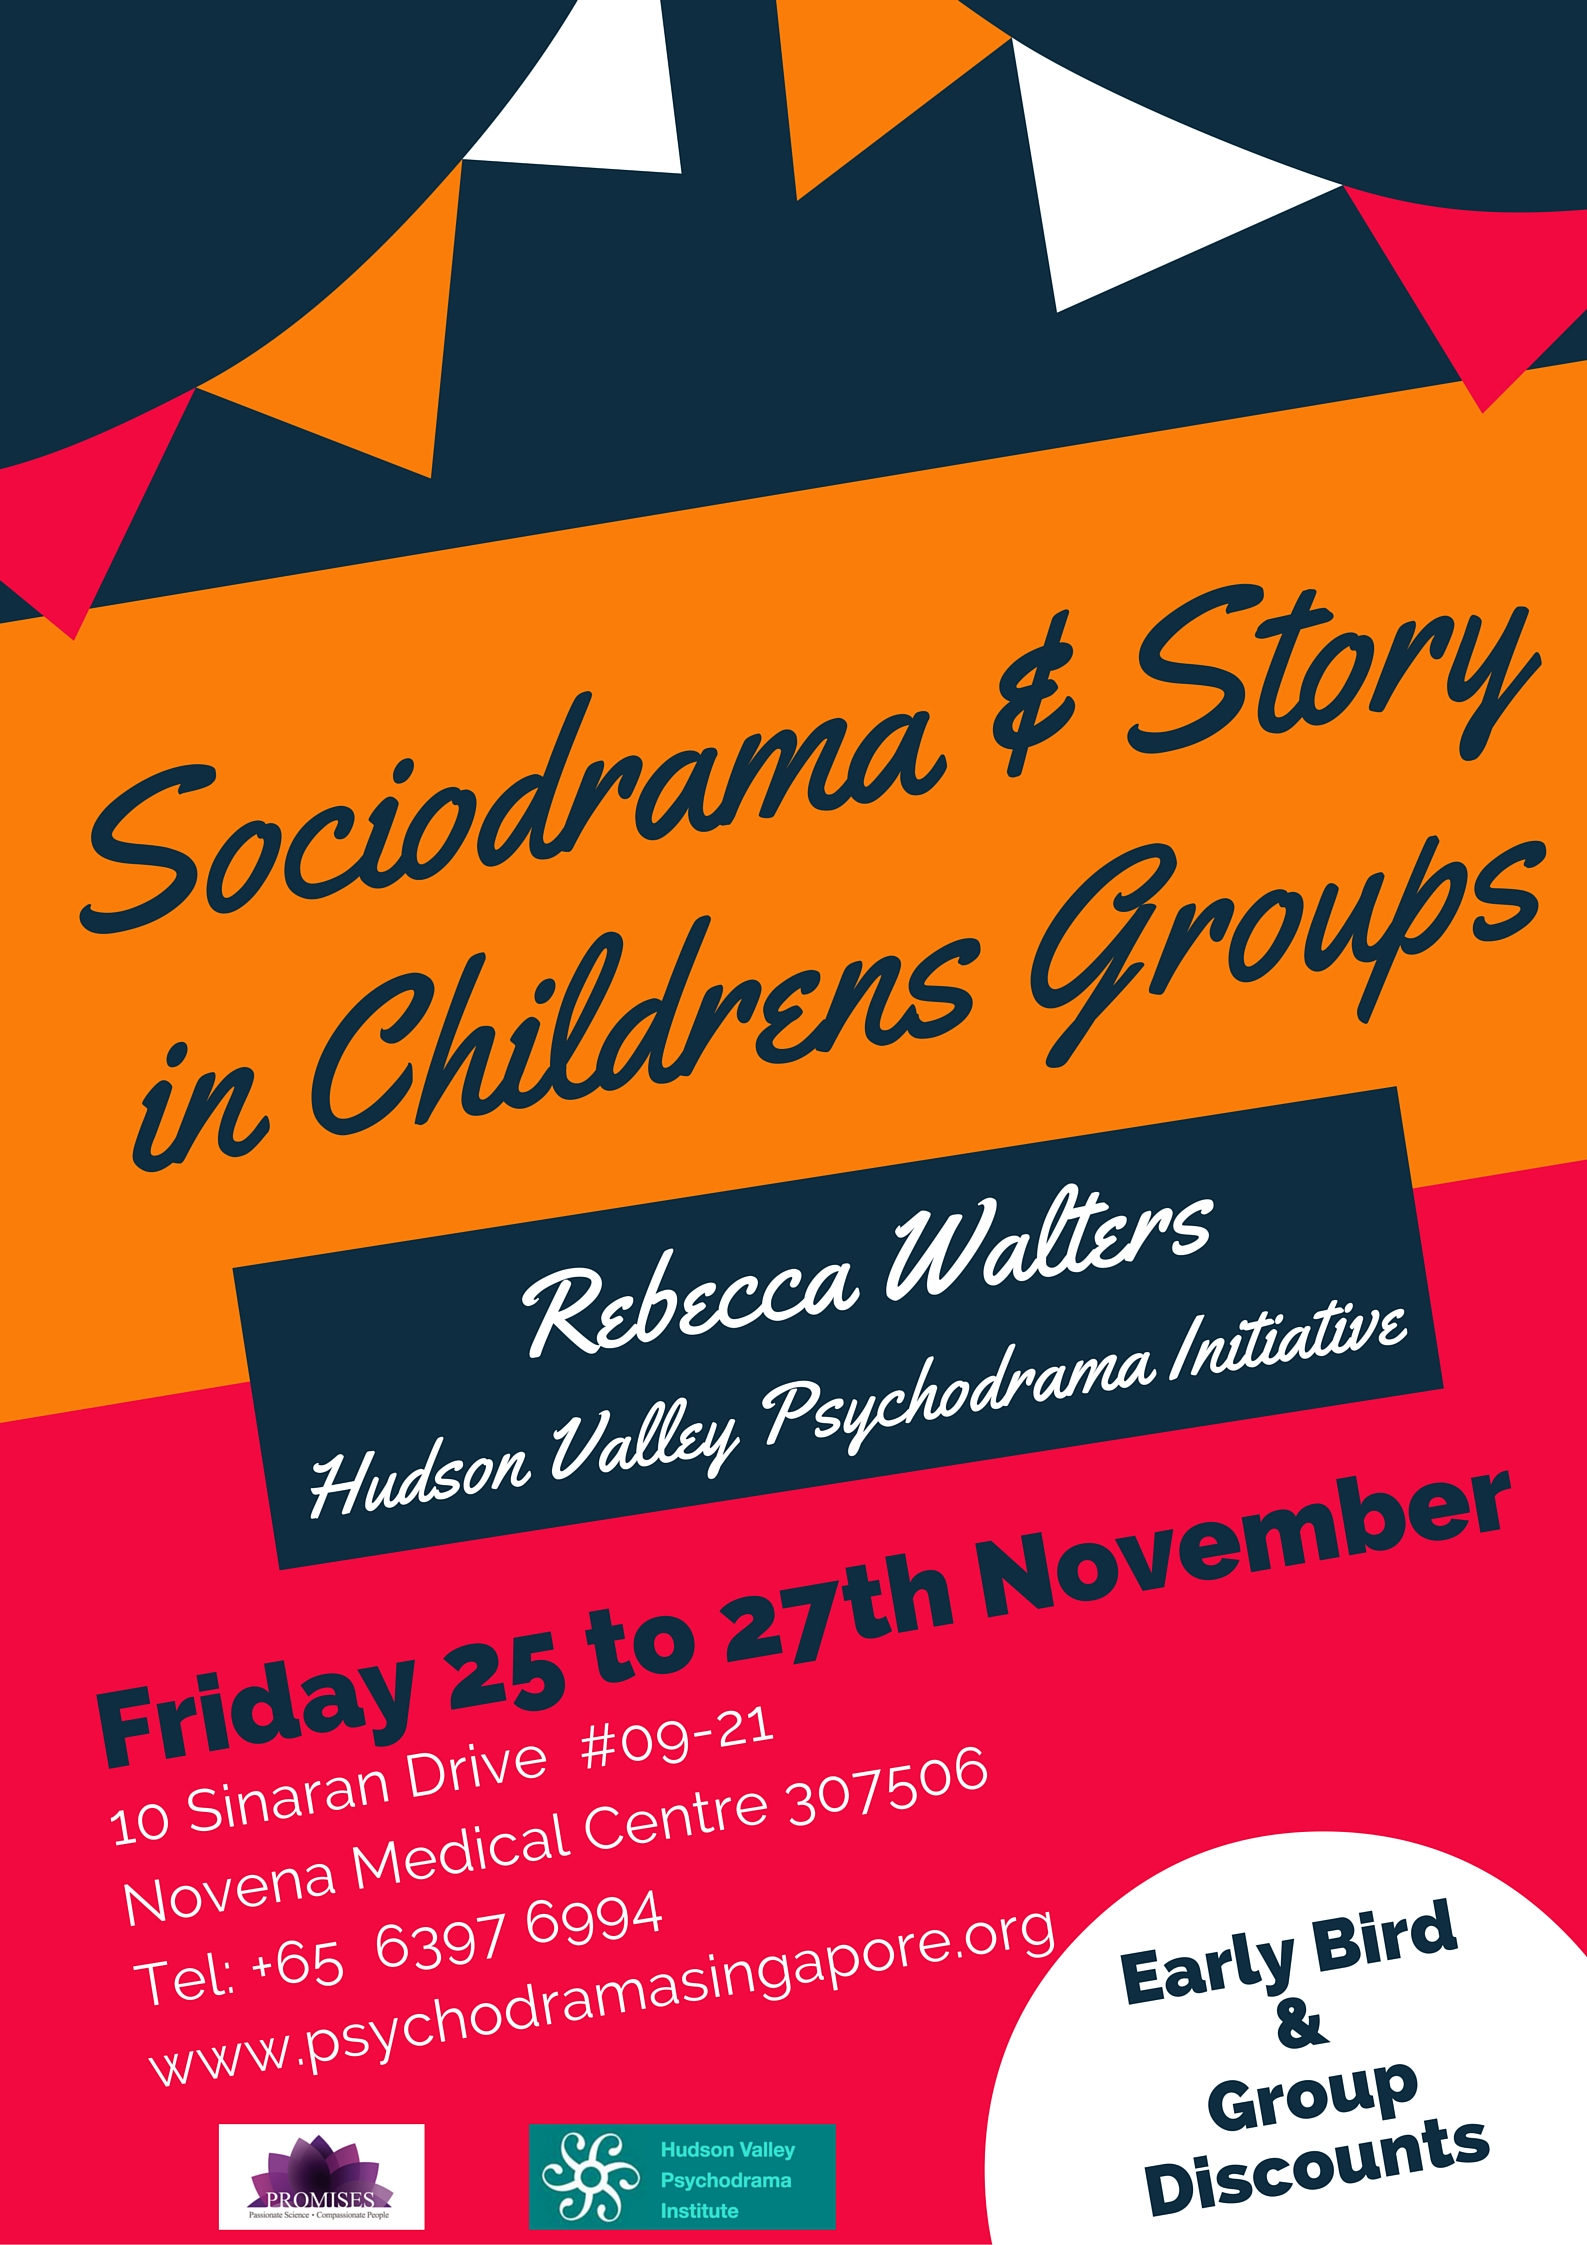 Sociodrama & Story in Childrens Groups - Rebecca Walters - Singapore